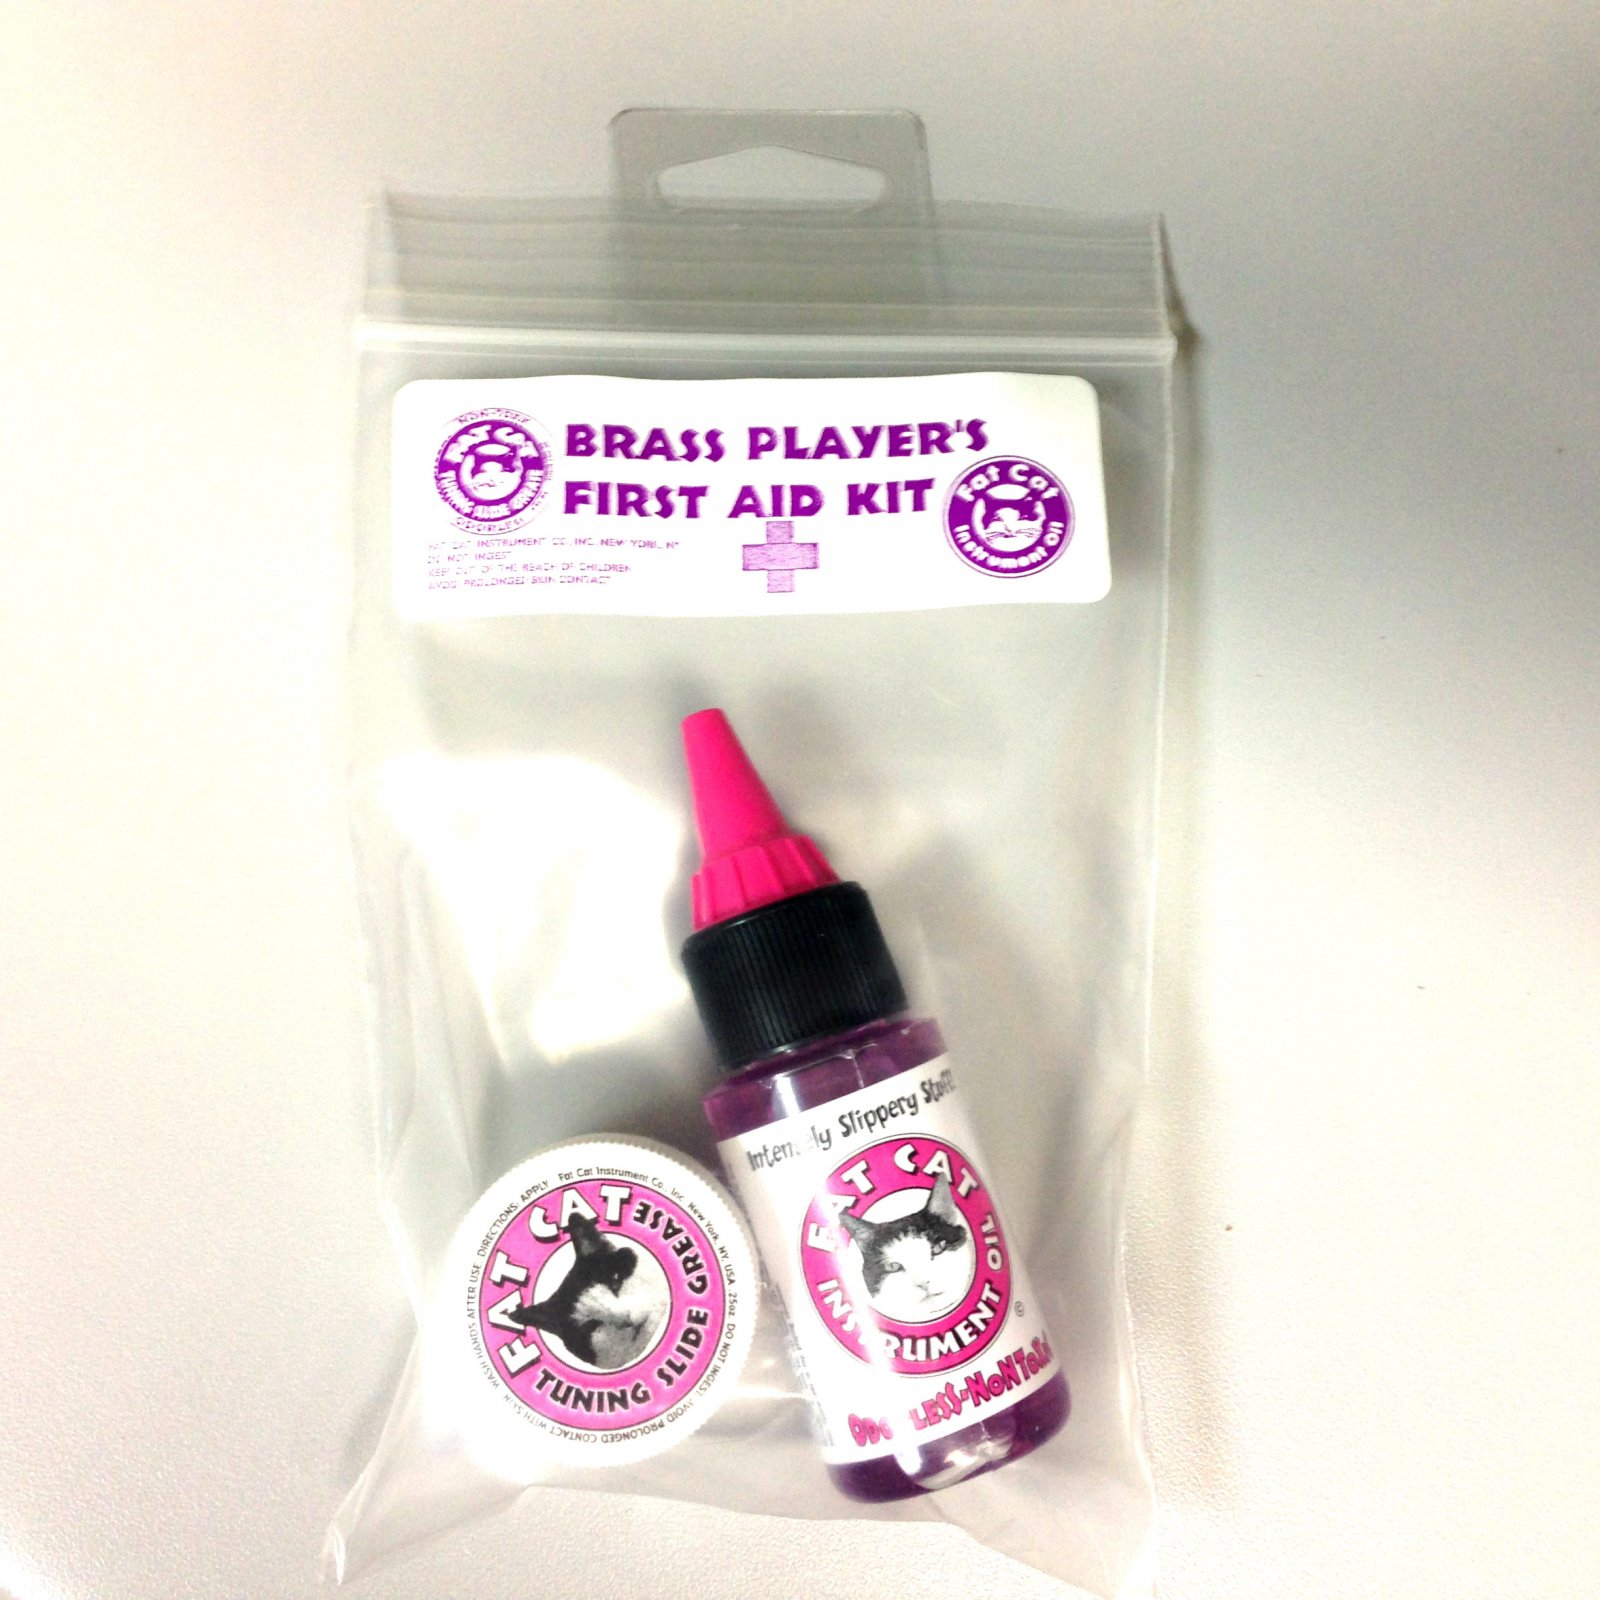 Fat Cat Brass Player's First Aid Kit